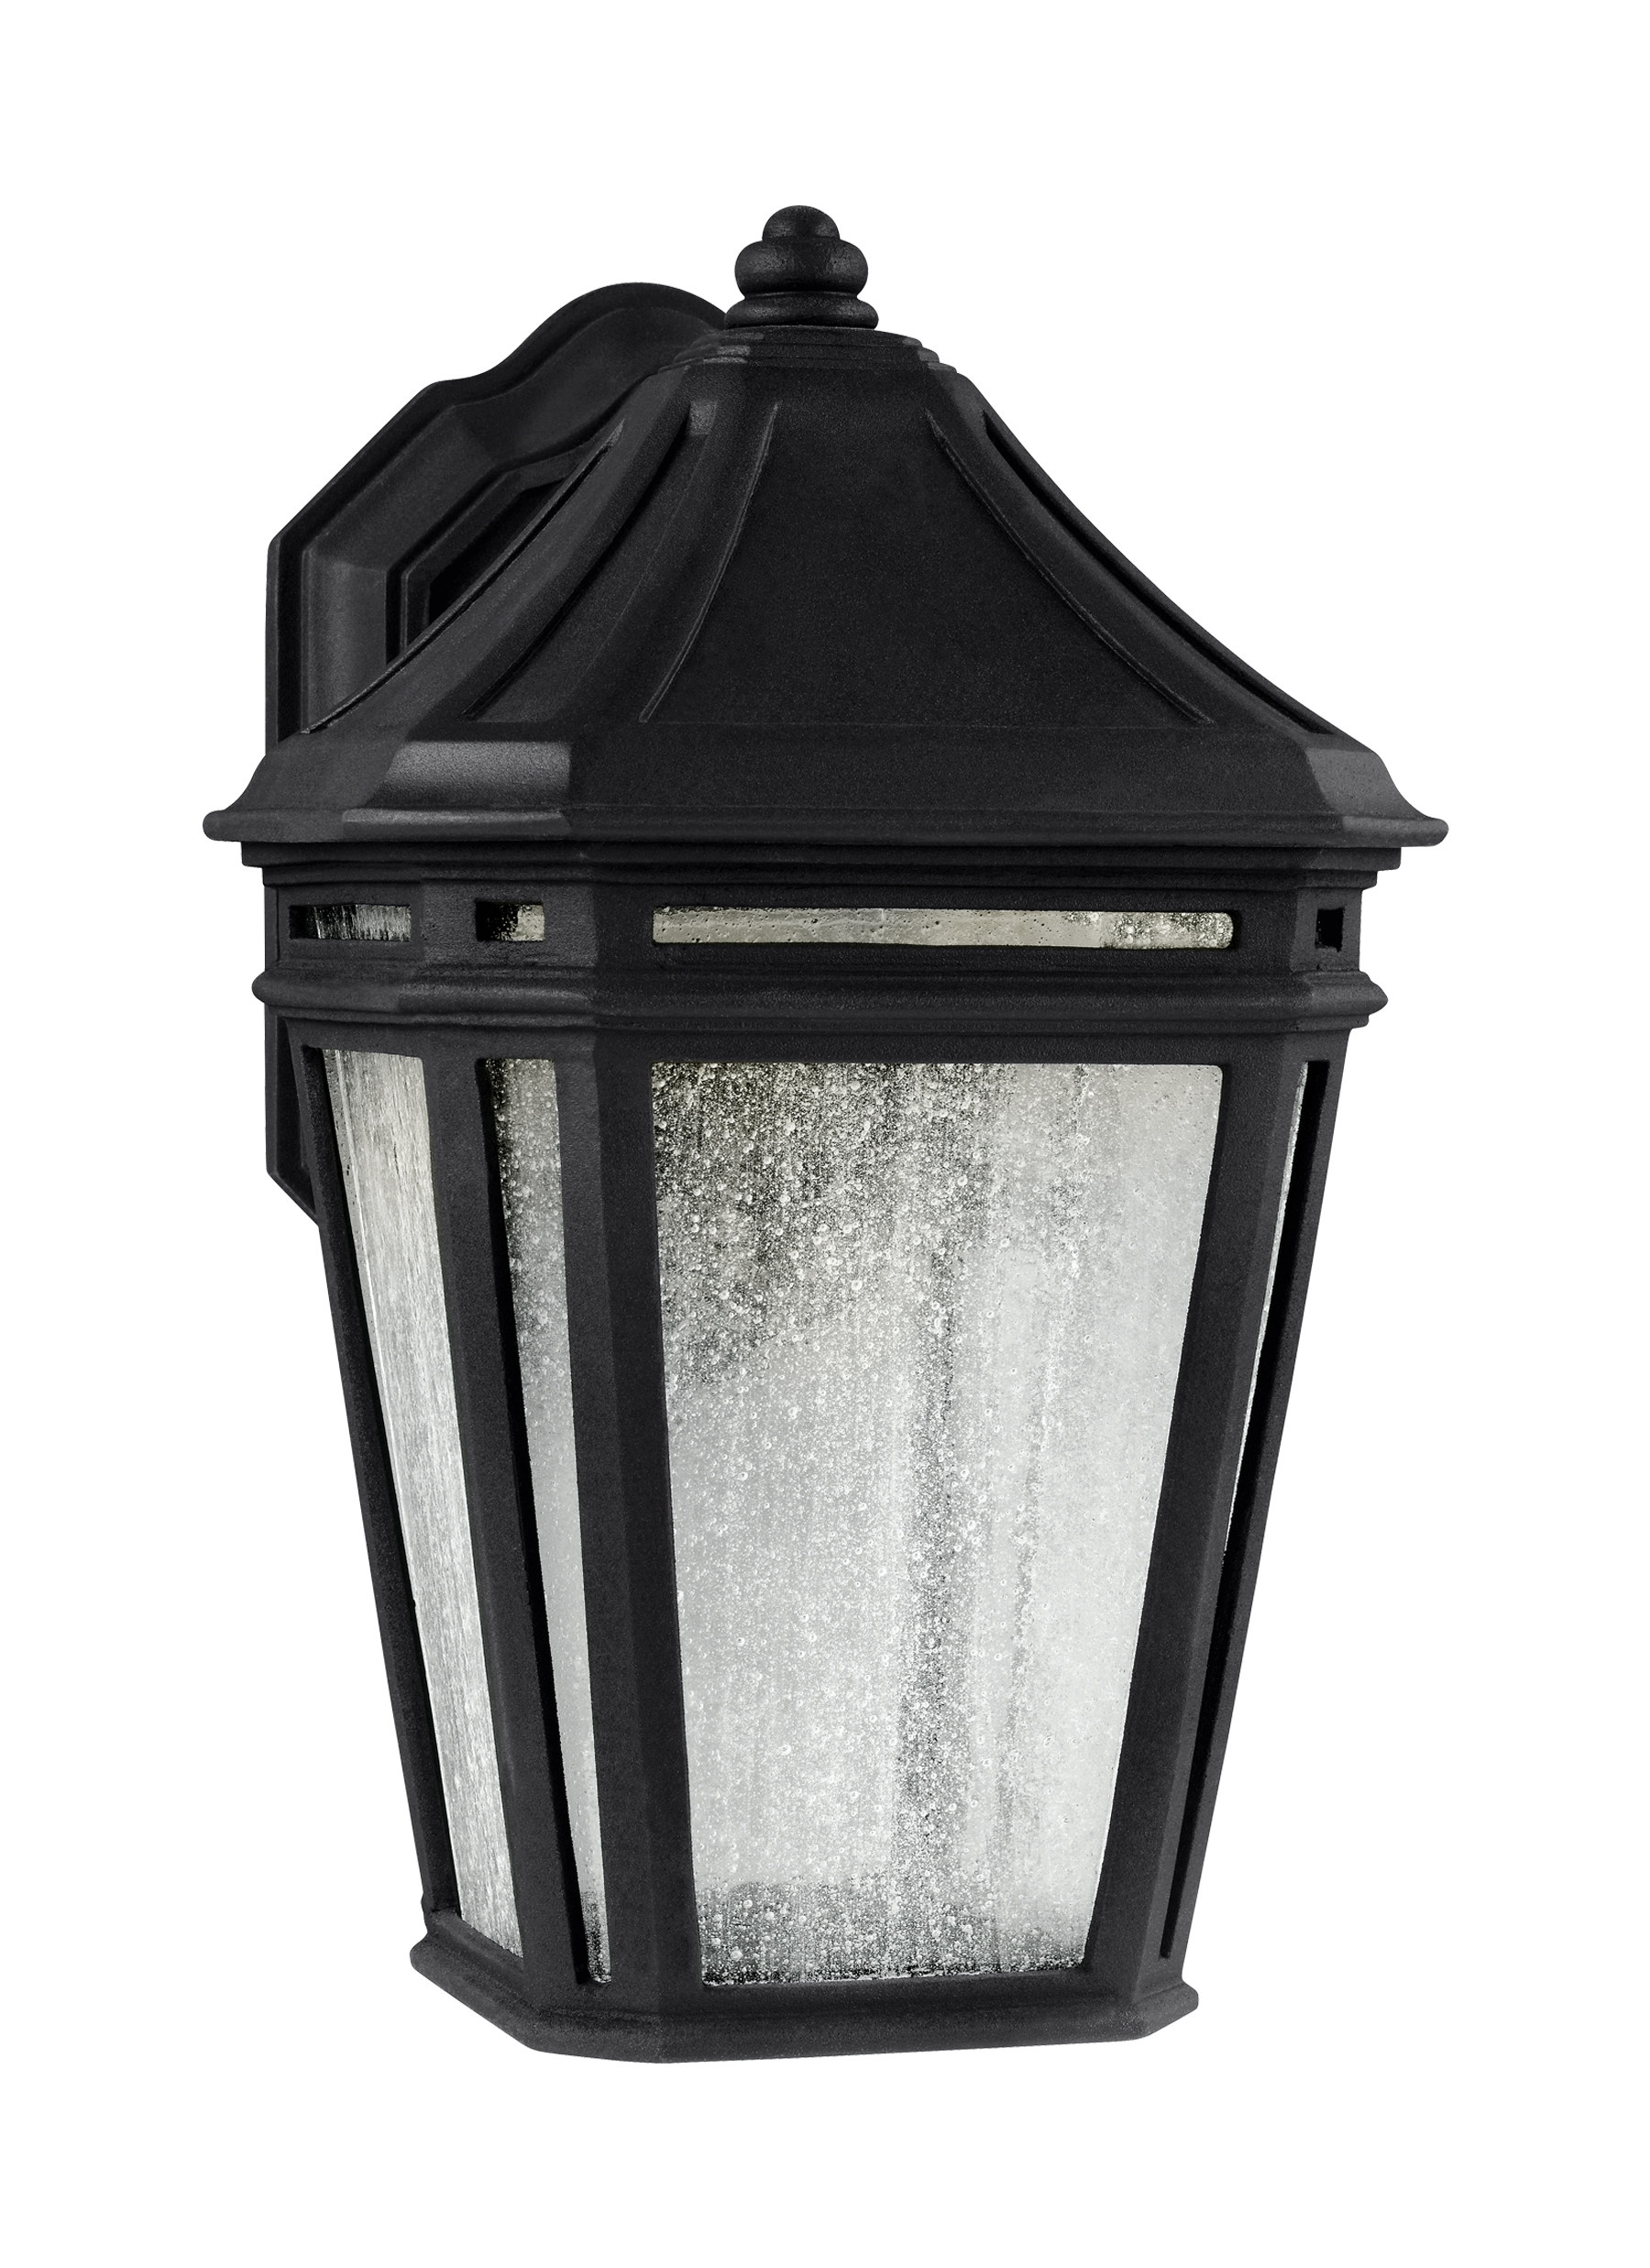 Ol11302Bk-Led,led Outdoor Sconce,black with regard to Outdoor Exterior Lanterns (Image 13 of 20)